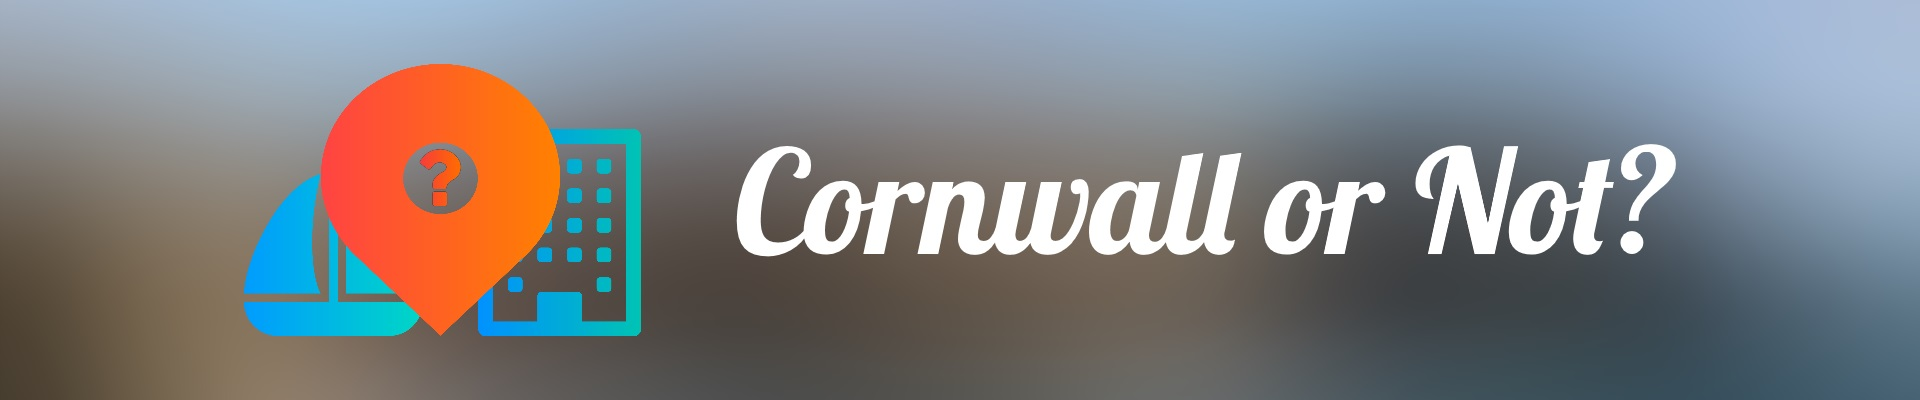 Cornwall or Not? - A Street View Guessing Game